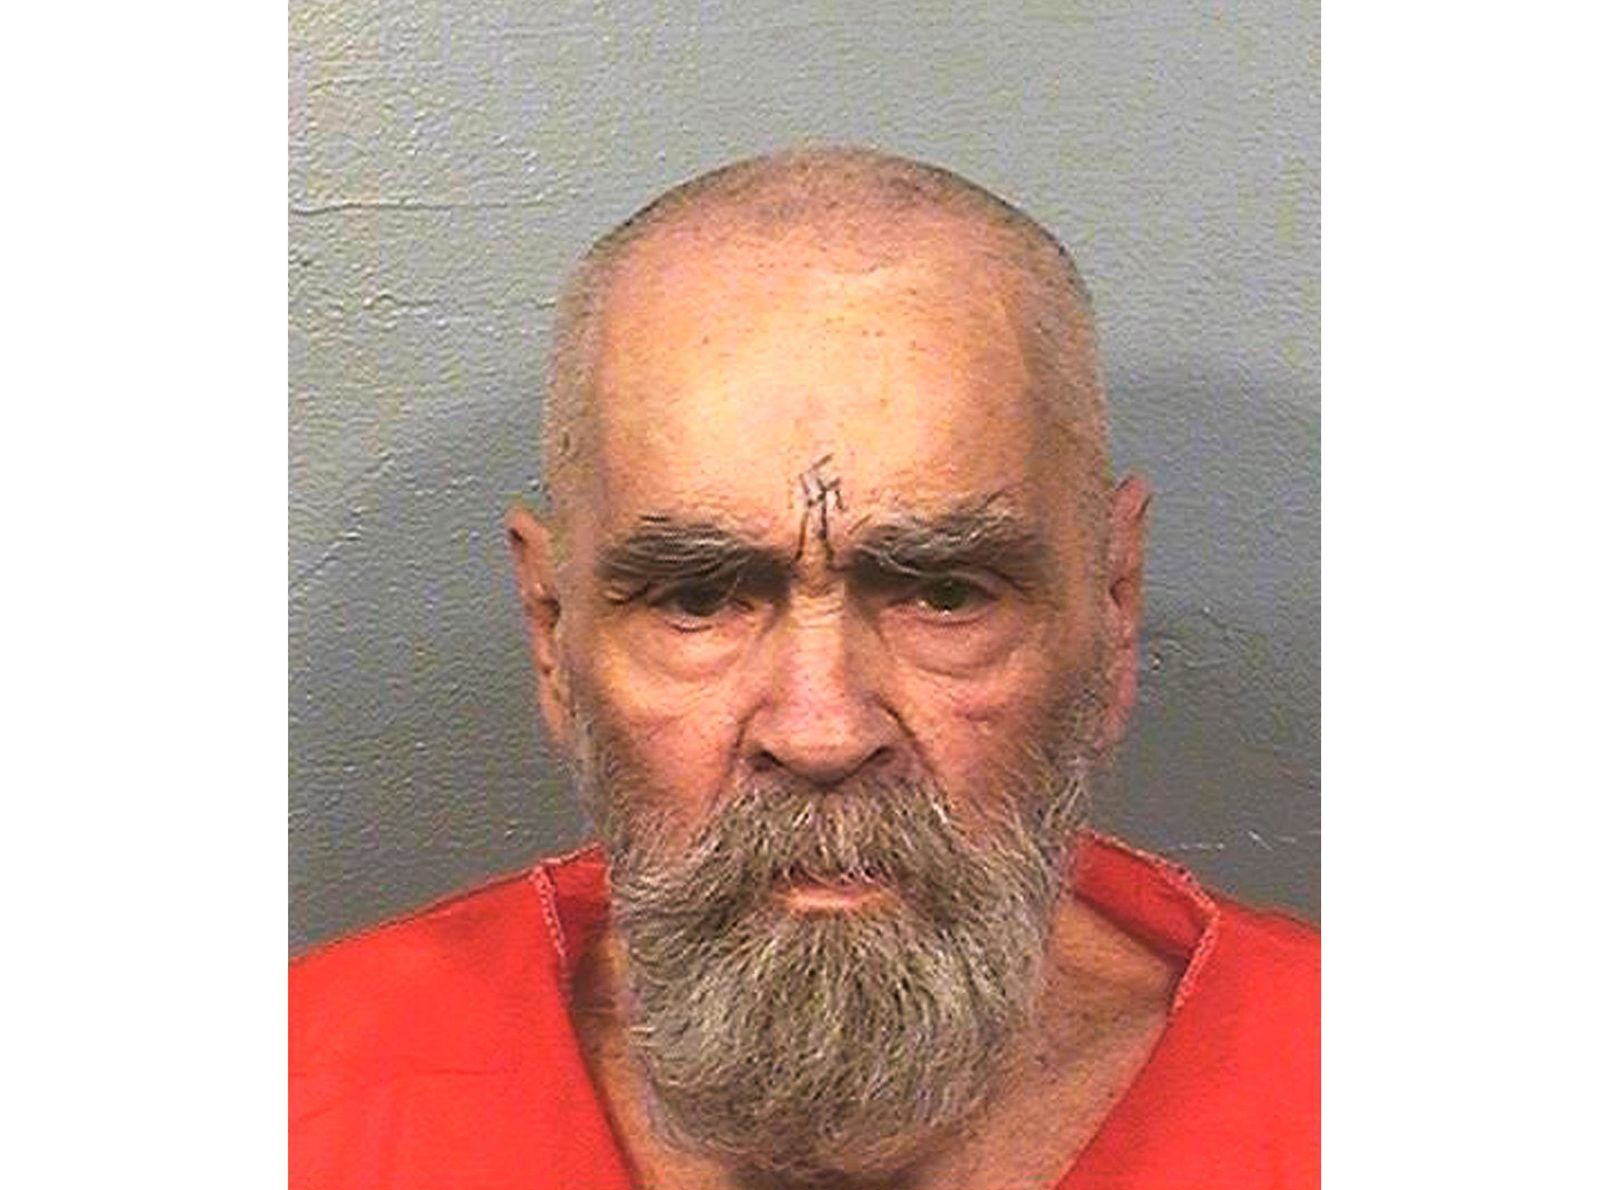 FILE - This Aug. 14, 2017 file photo provided by the California Department of Corrections and Rehabilitation shows Charles Manson.{ } (California Department of Corrections and Rehabilitation via AP, File)